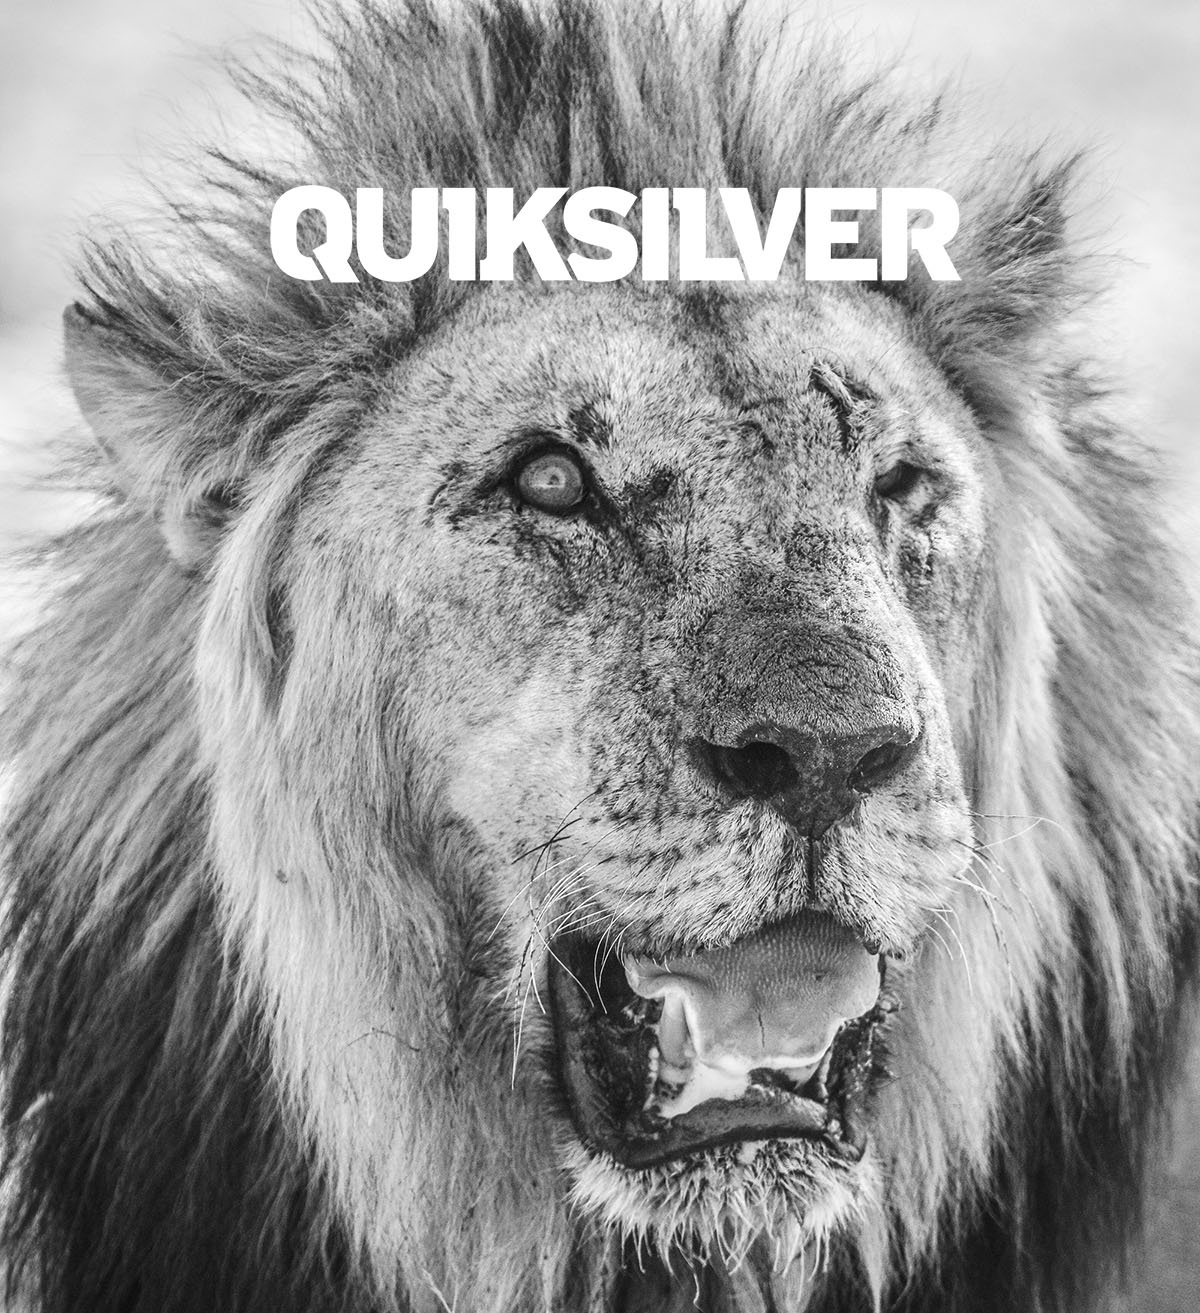 Shooting for Quiksilver in Namibia